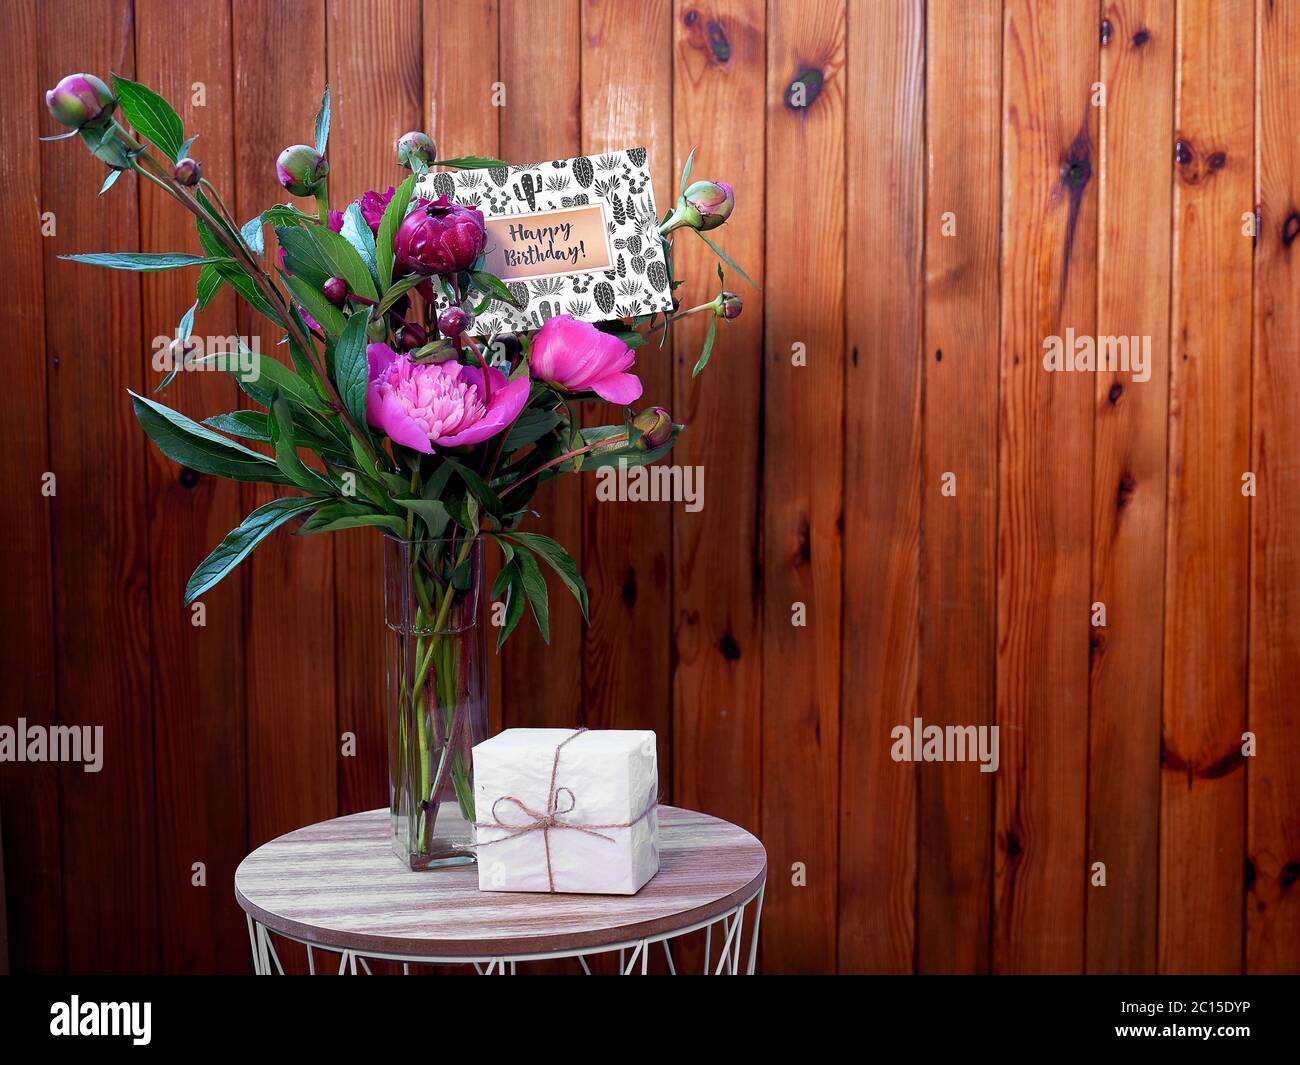 Pink flowers peonies in a vase on a wooden background with a small white gift and a happy birthday card. The photo was taken with natural daylight. Stock Photo